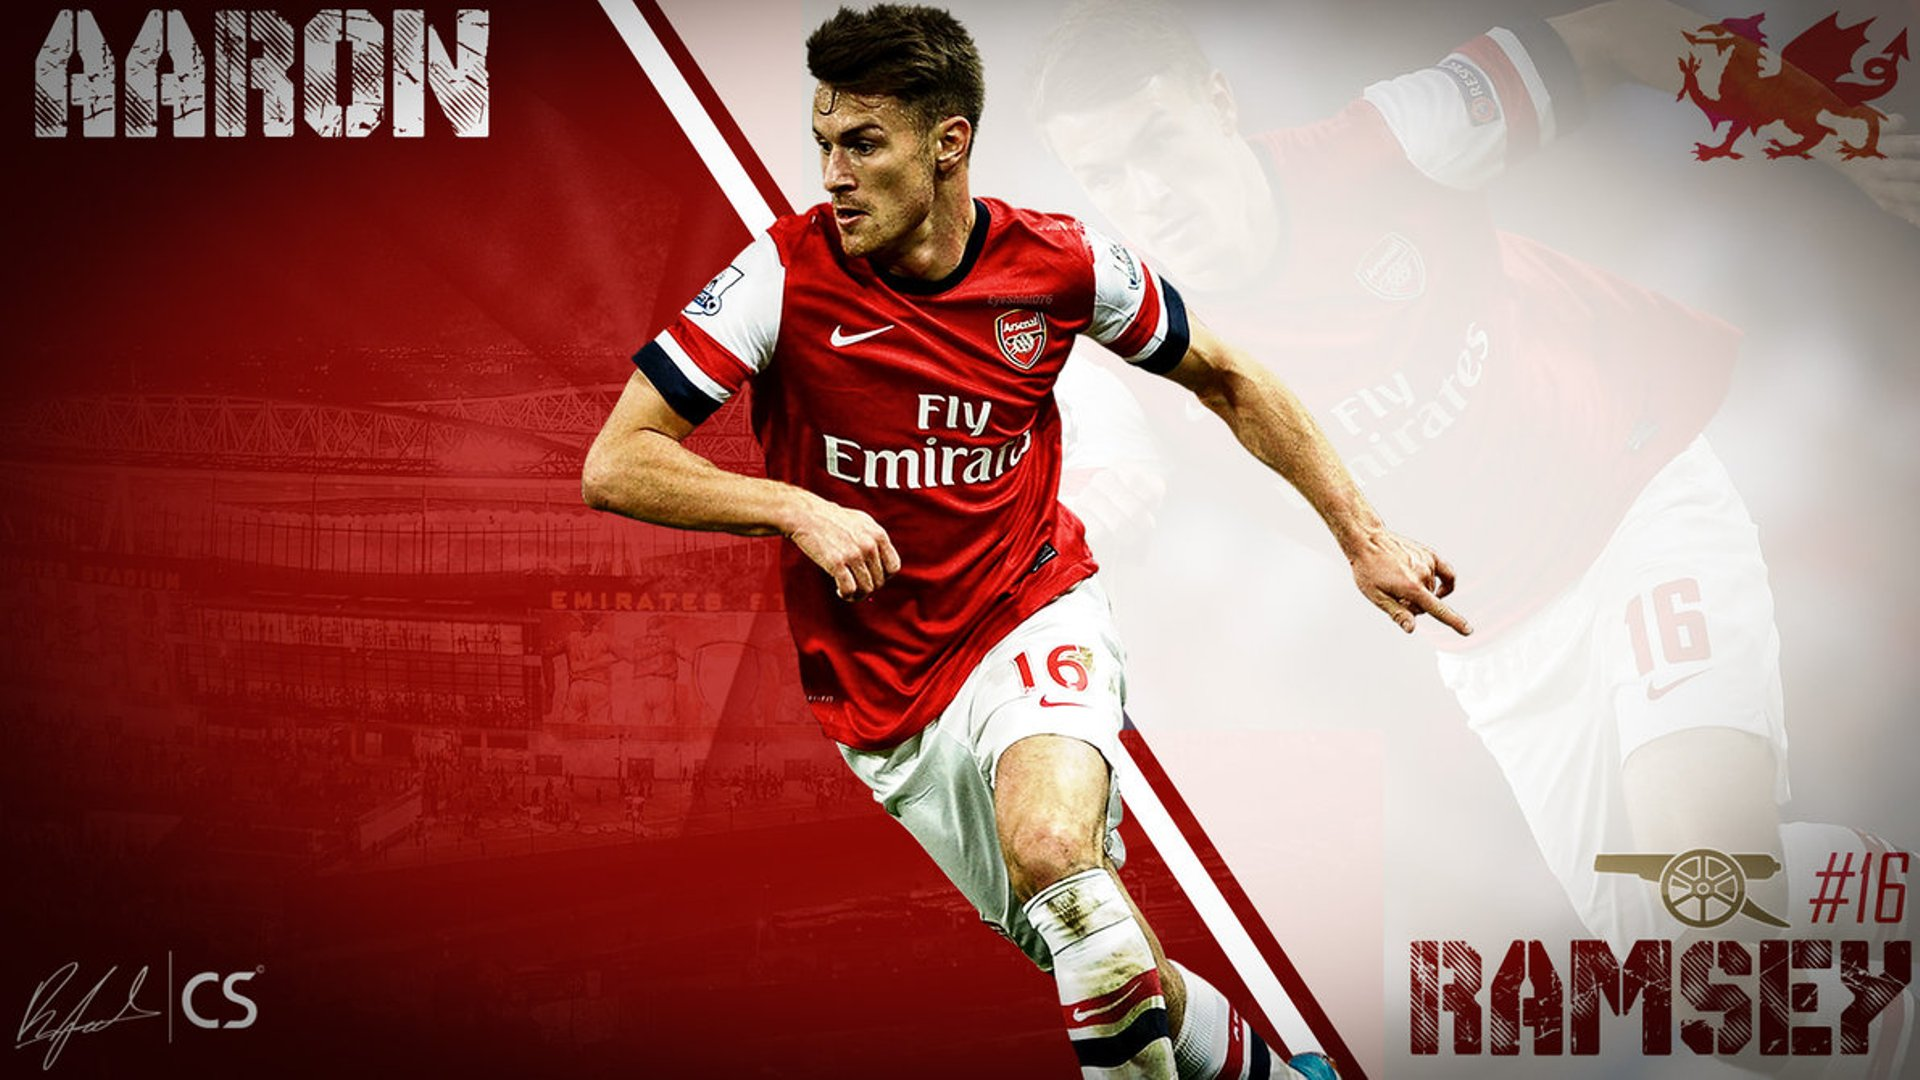 Aaron Ramsey Arsenal wallpaper HD 2016 - wallpaper.wiki